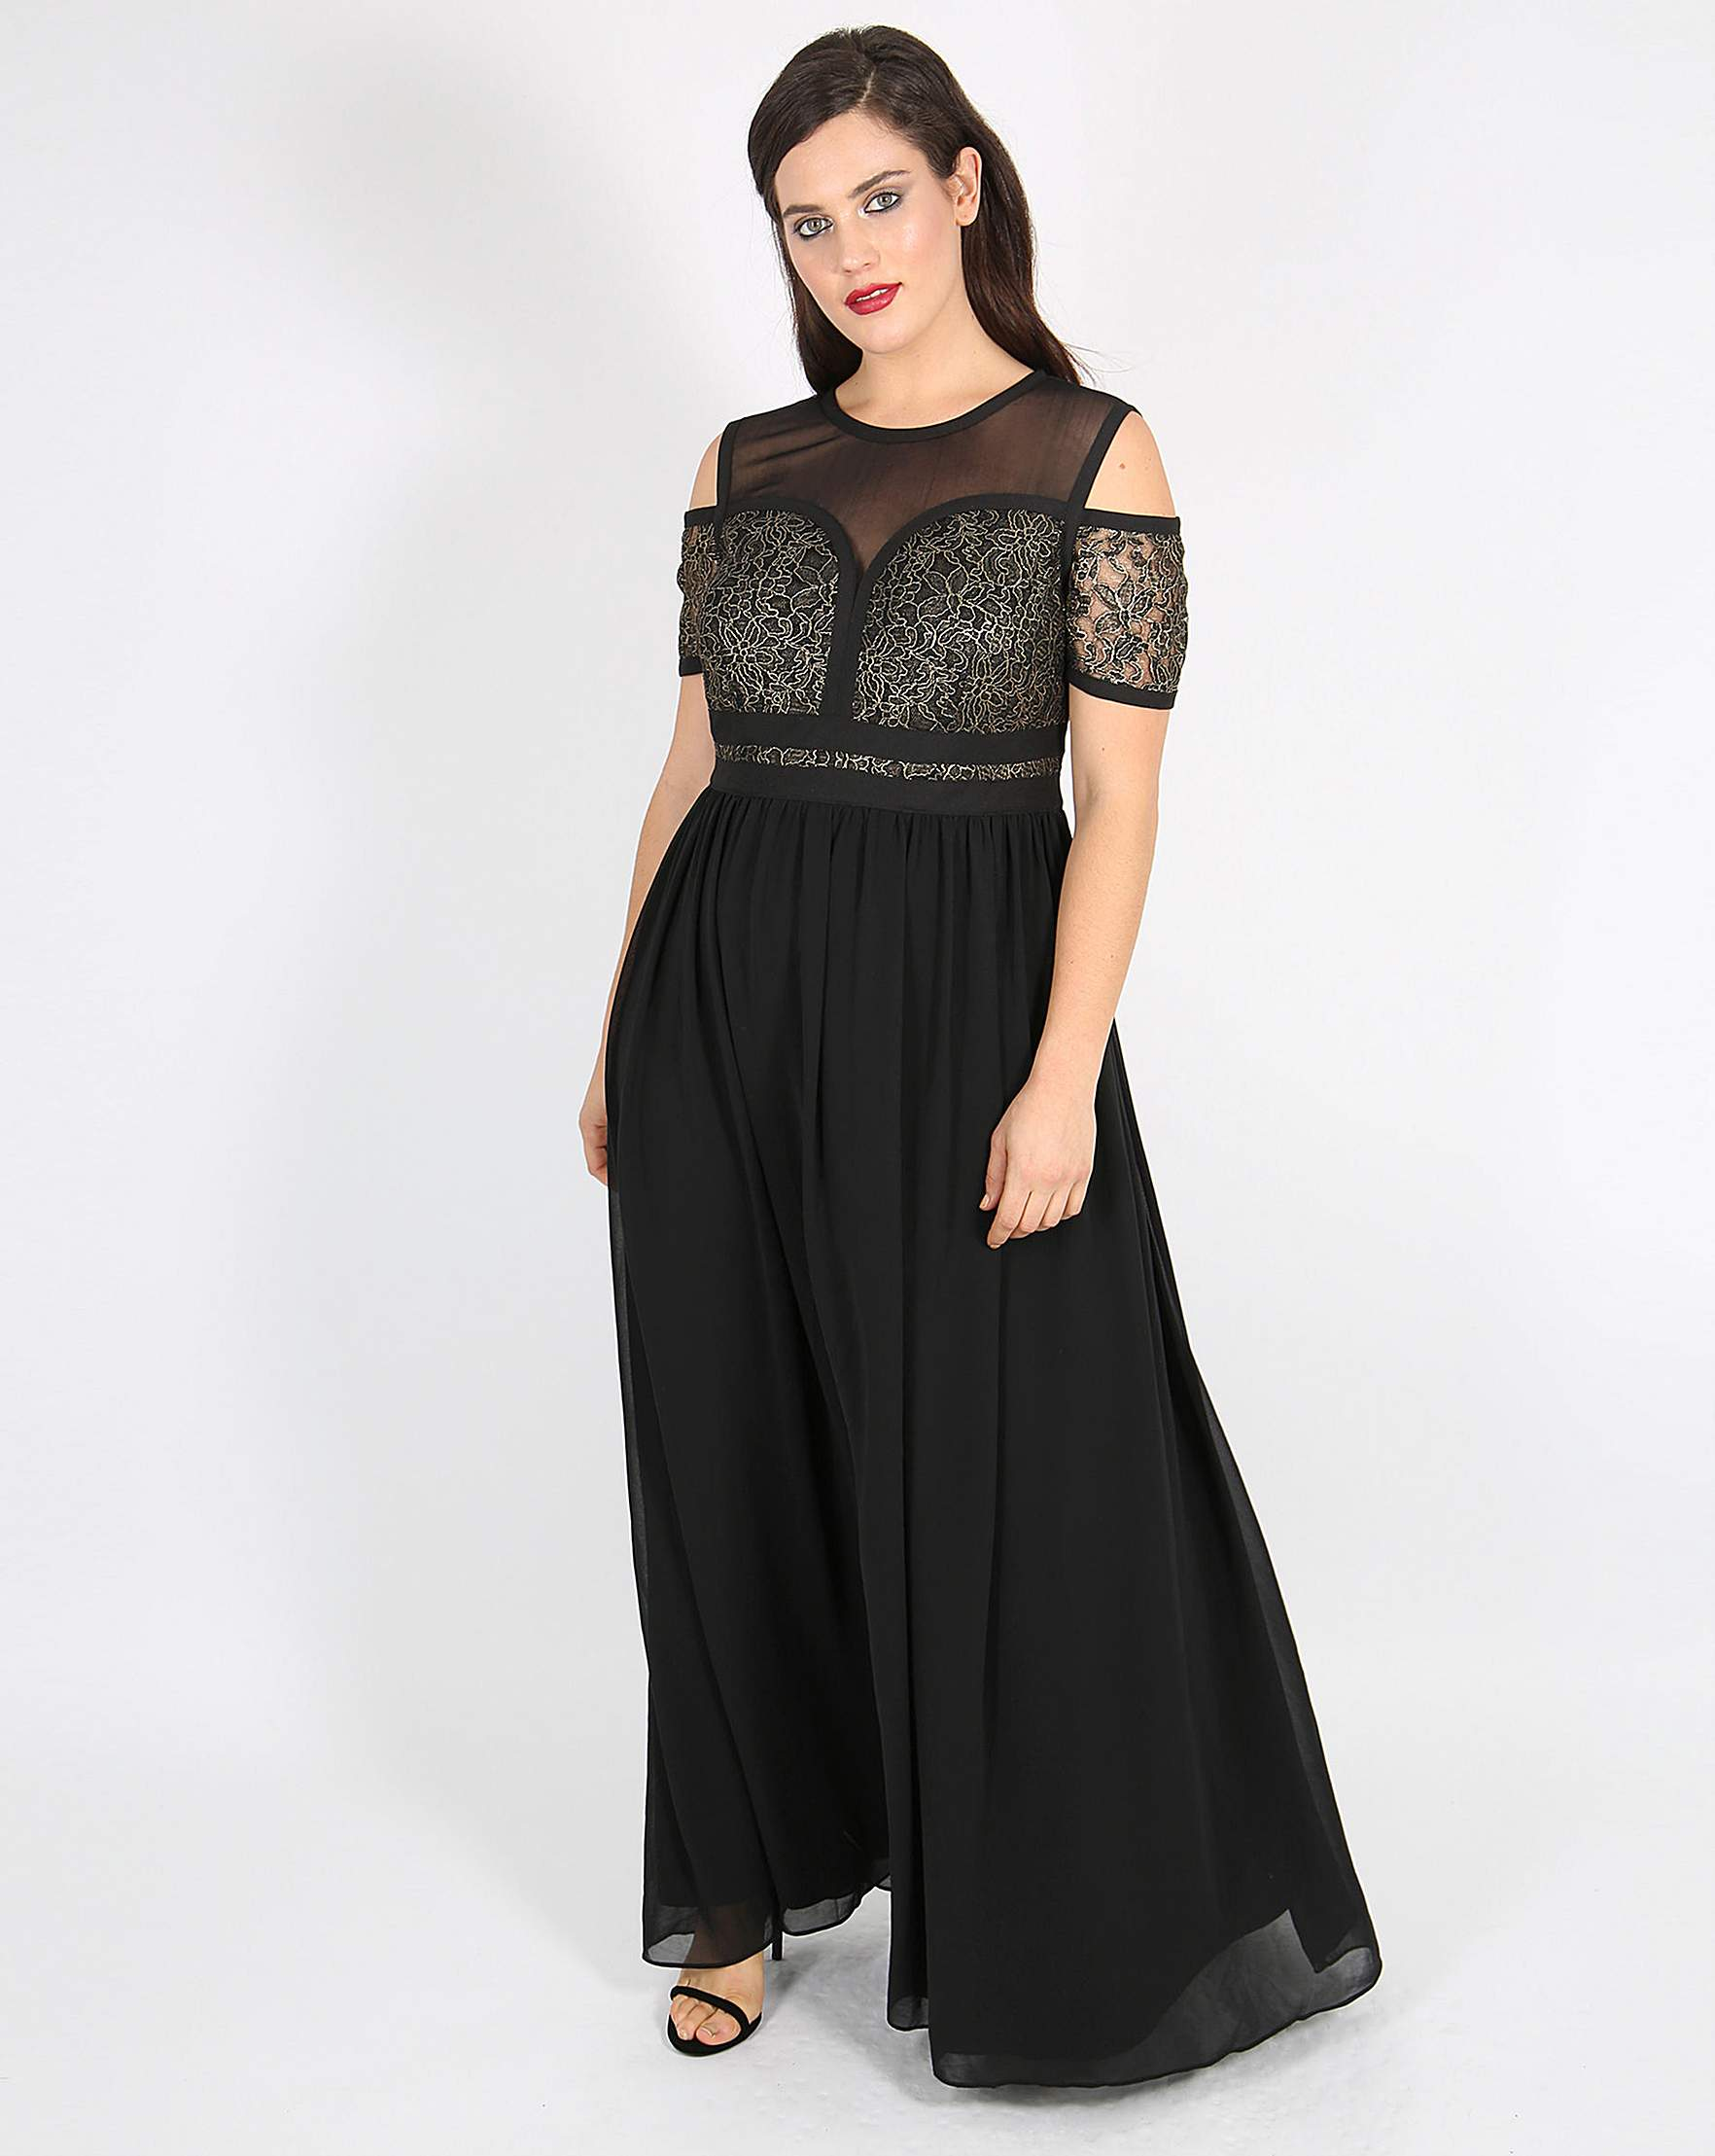 Size 22 maxi dresses uk for plus